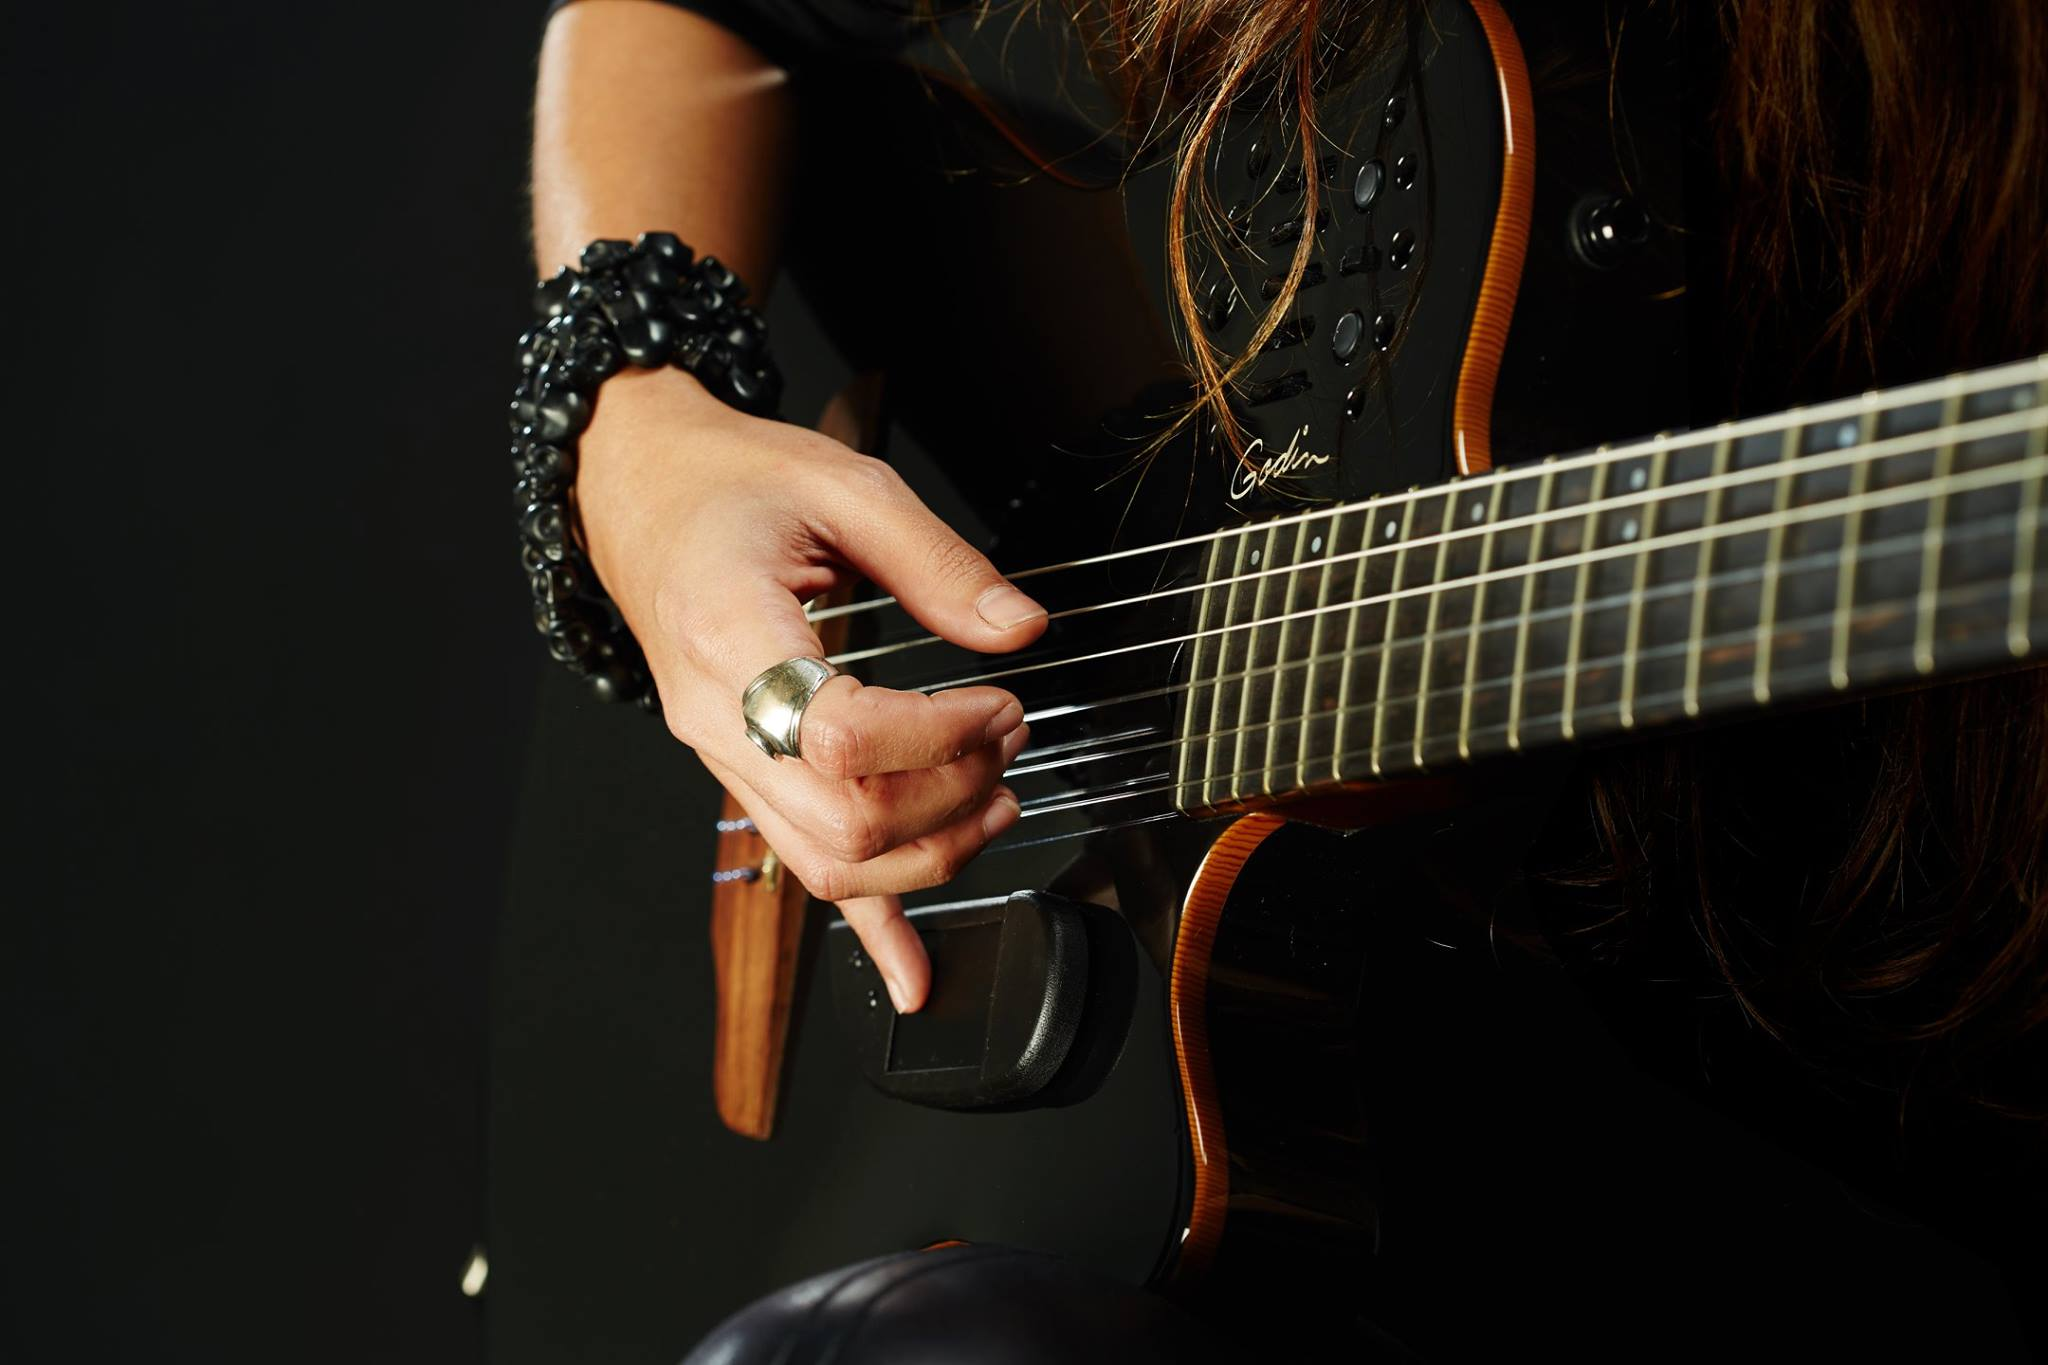 Revpad Wireless Guitar Effects Touchpad. Courtesy